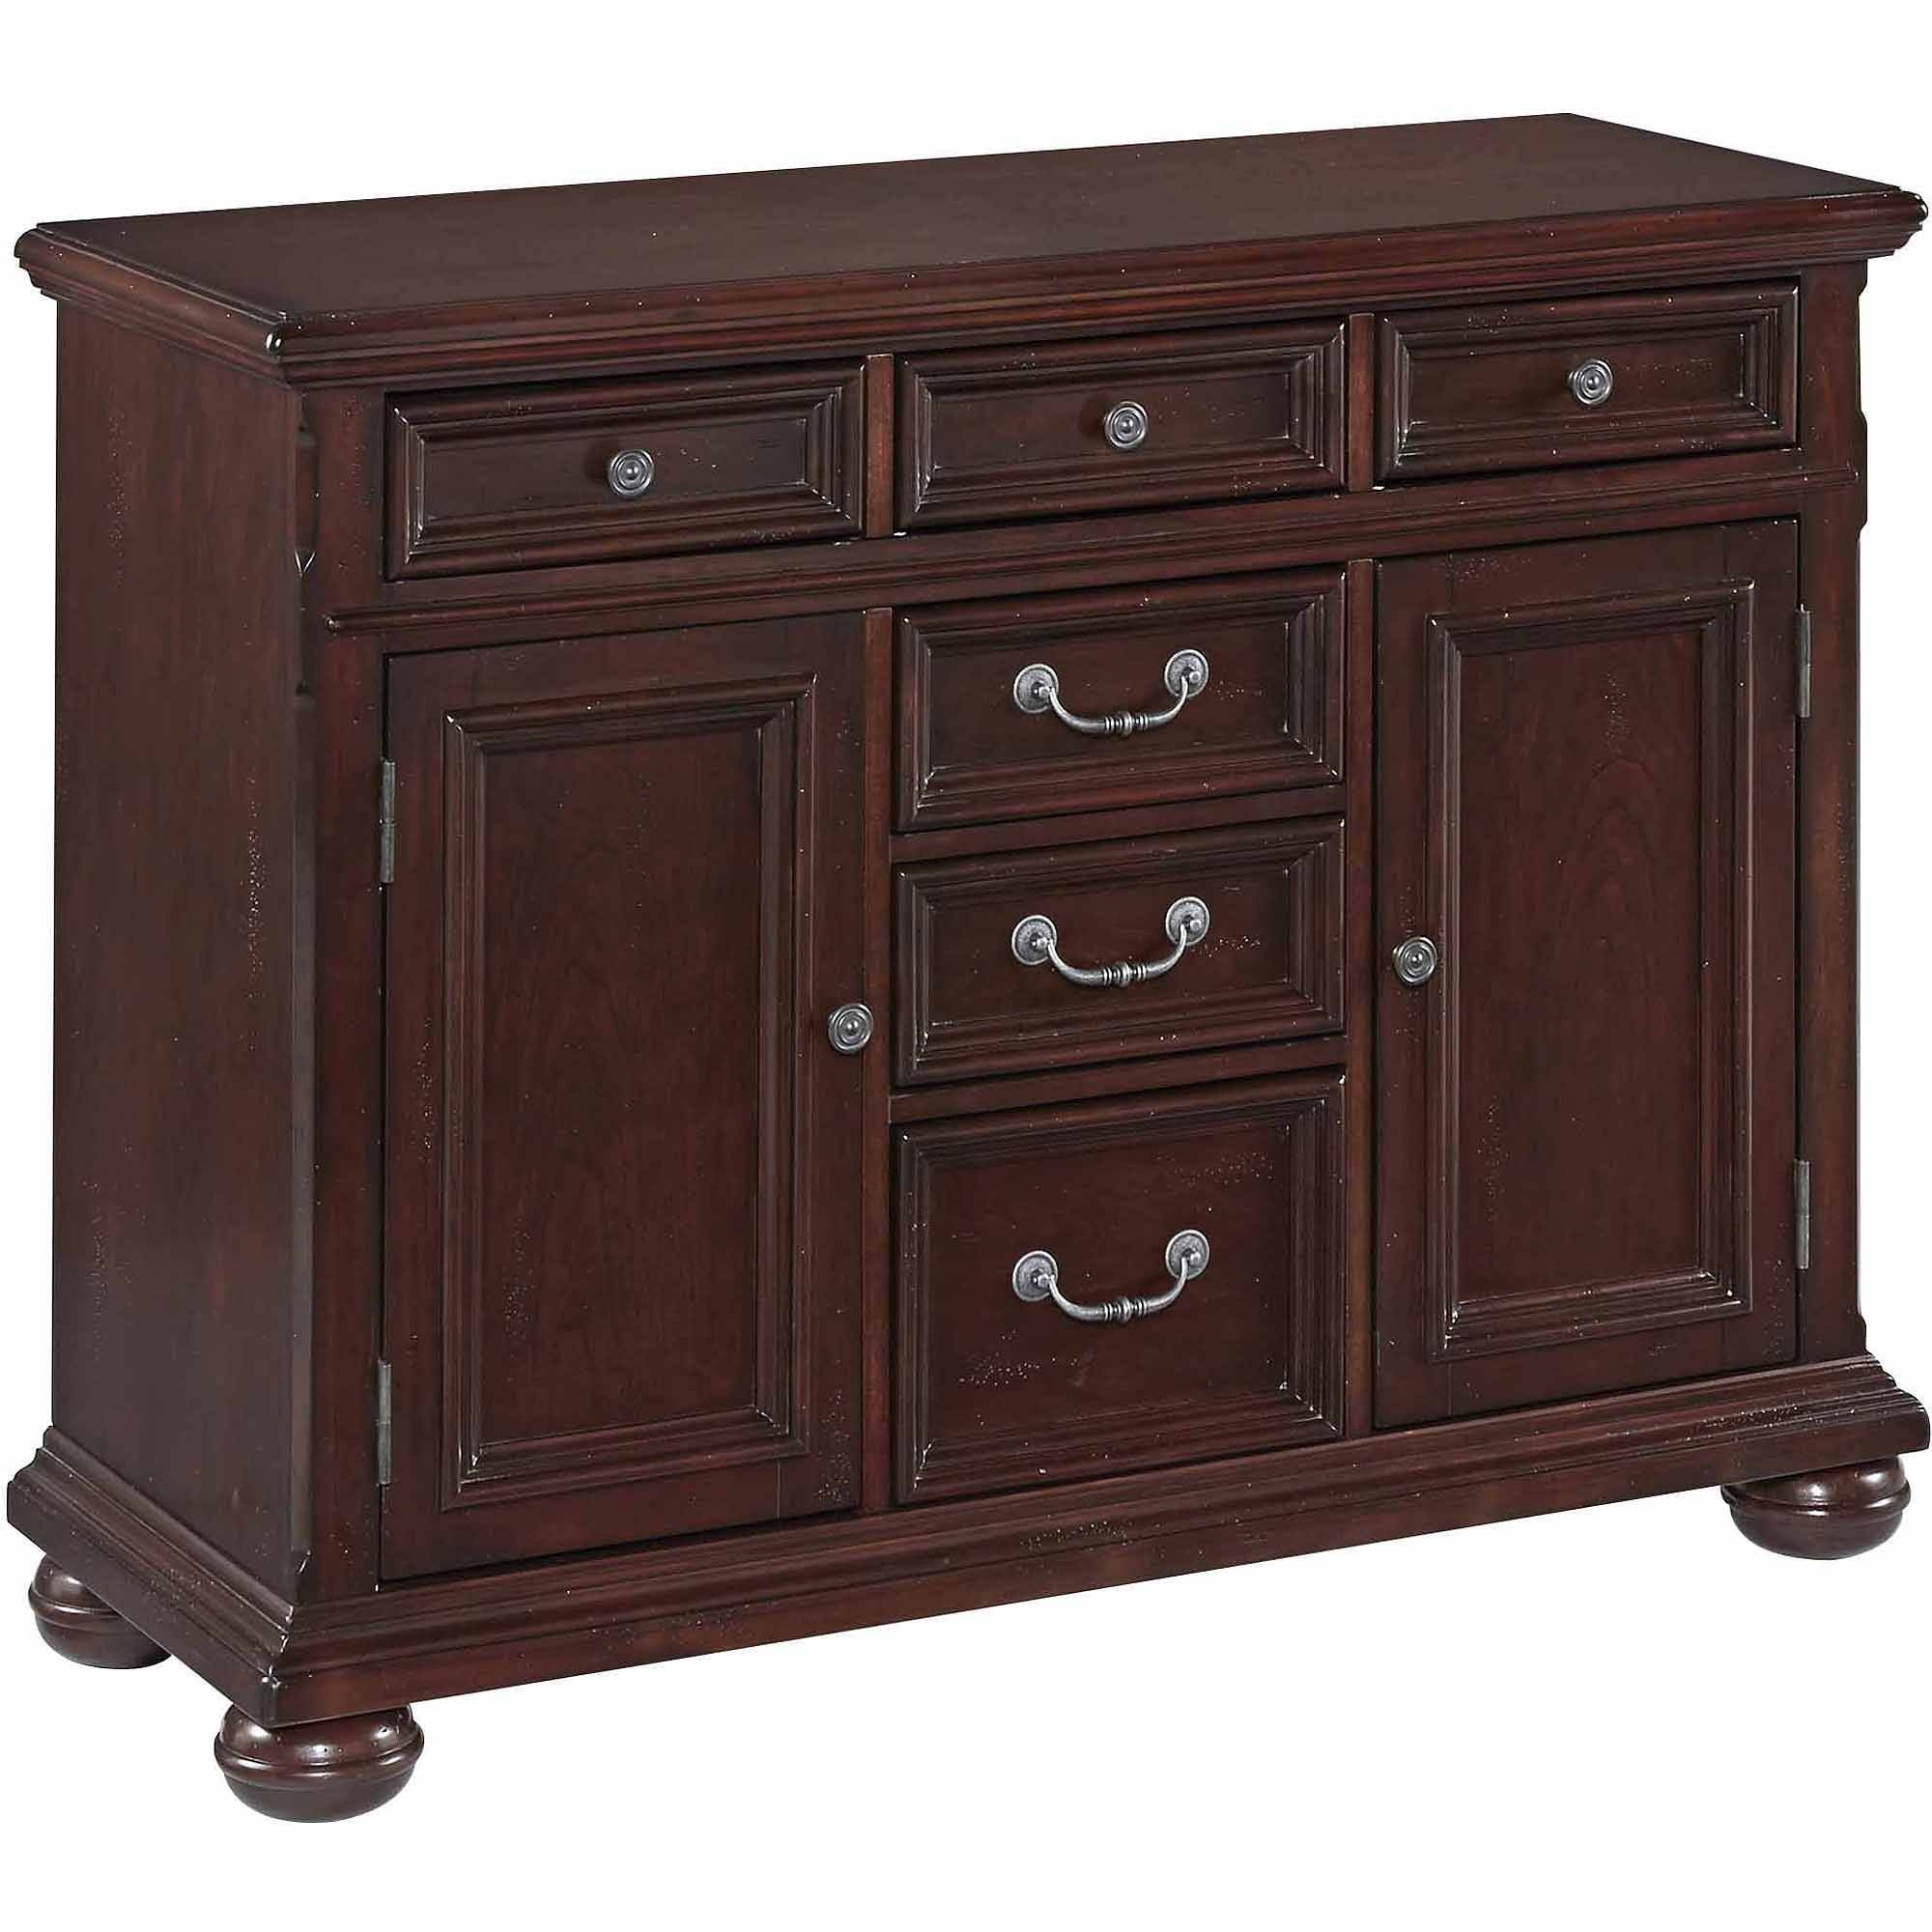 China Cabinet & Buffet Furniture : Kitchen & Dining Furniture throughout Small Sideboards With Drawers (Image 7 of 30)